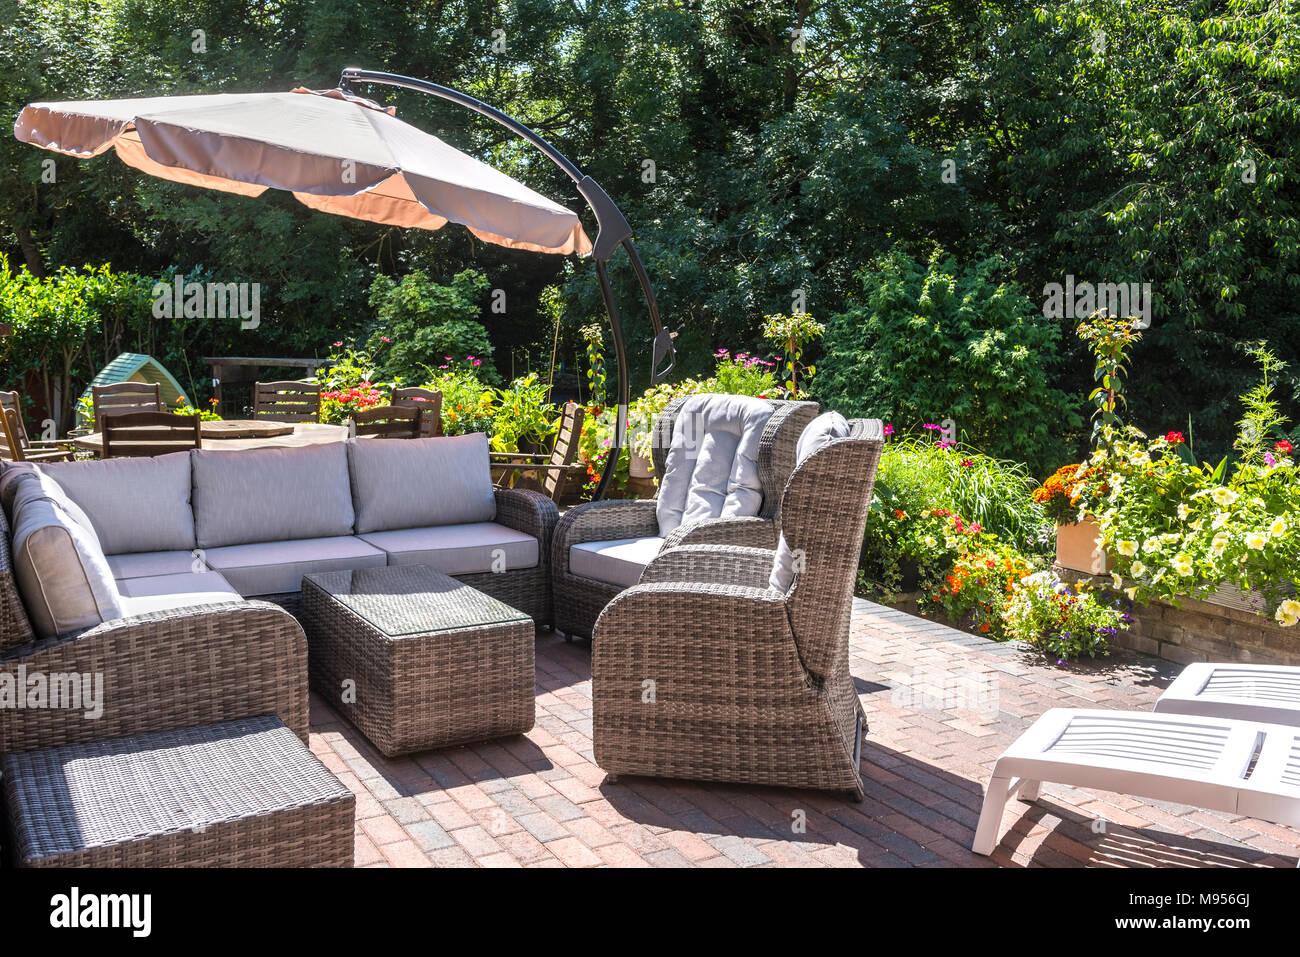 Exterior Furniture High Resolution Stock Photography And Images Alamy